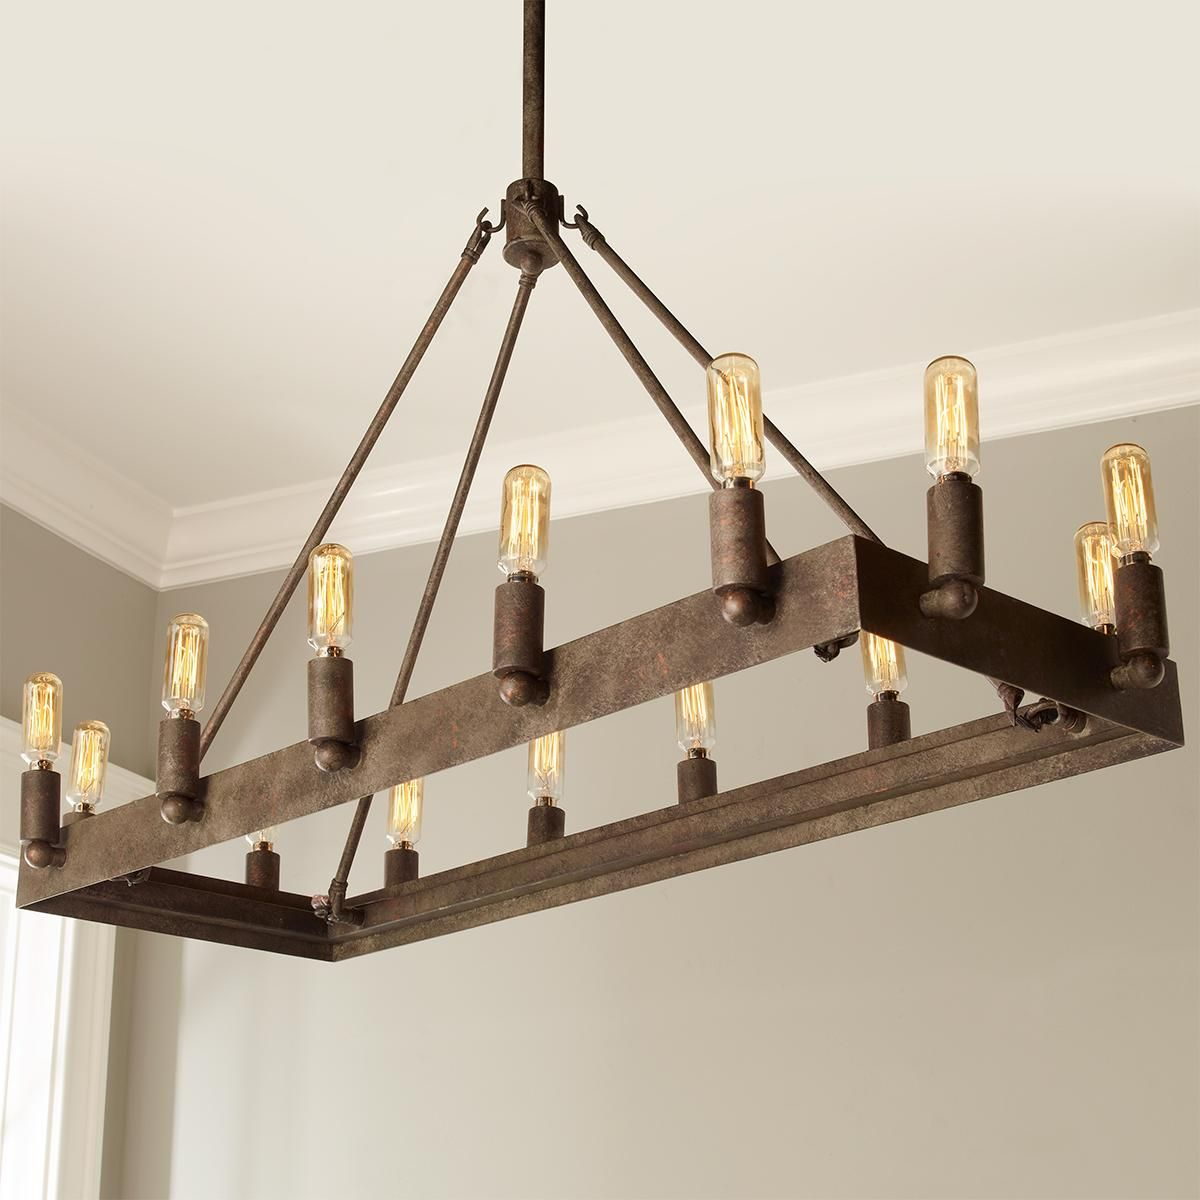 Urban loft industrial rectangular chandelier rectangular urban loft industrial rectangular chandelier aloadofball Gallery